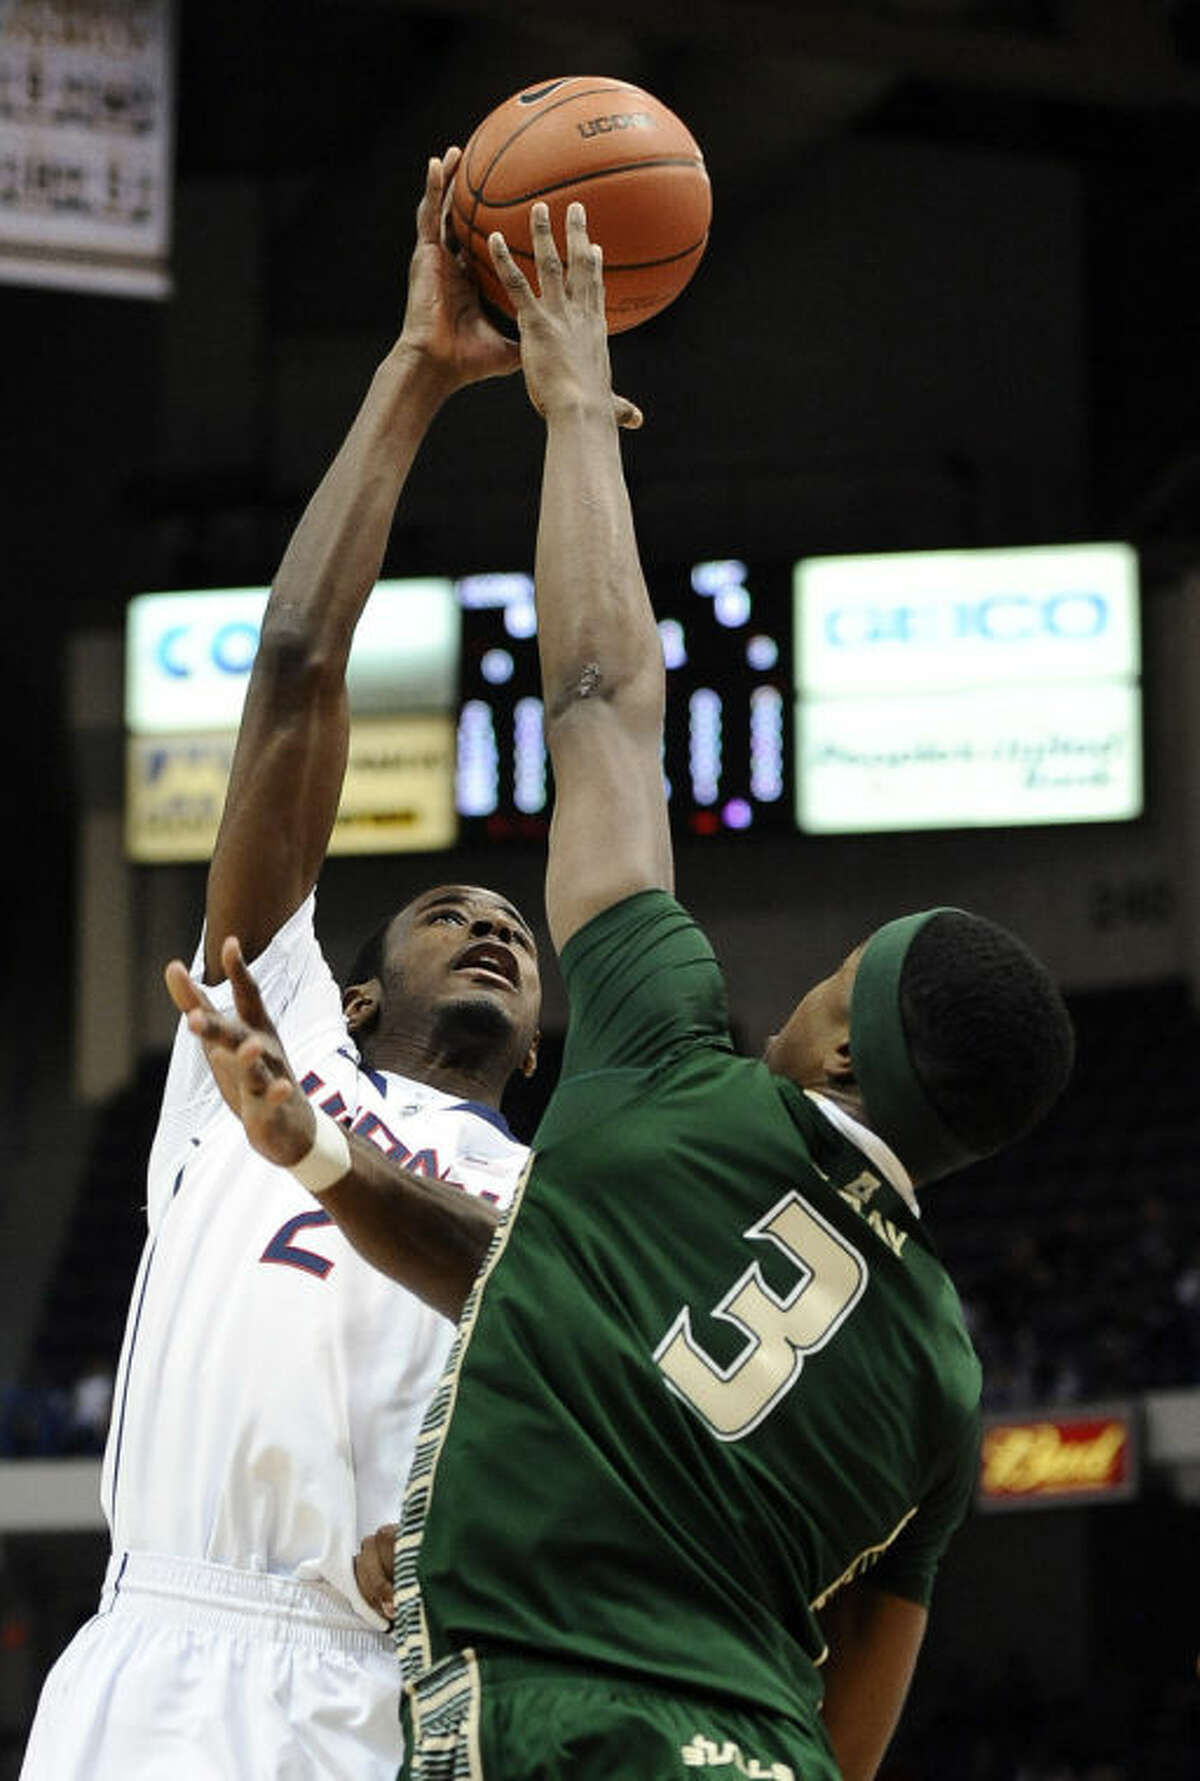 Connecticut's DeAndre Daniels shoots over South Florida's Zach LeDay, right, during the first half of an NCAA college basketball game on Wednesday, Feb. 12, 2014, in Hartford, Conn. (AP Photo/Jessica Hill)